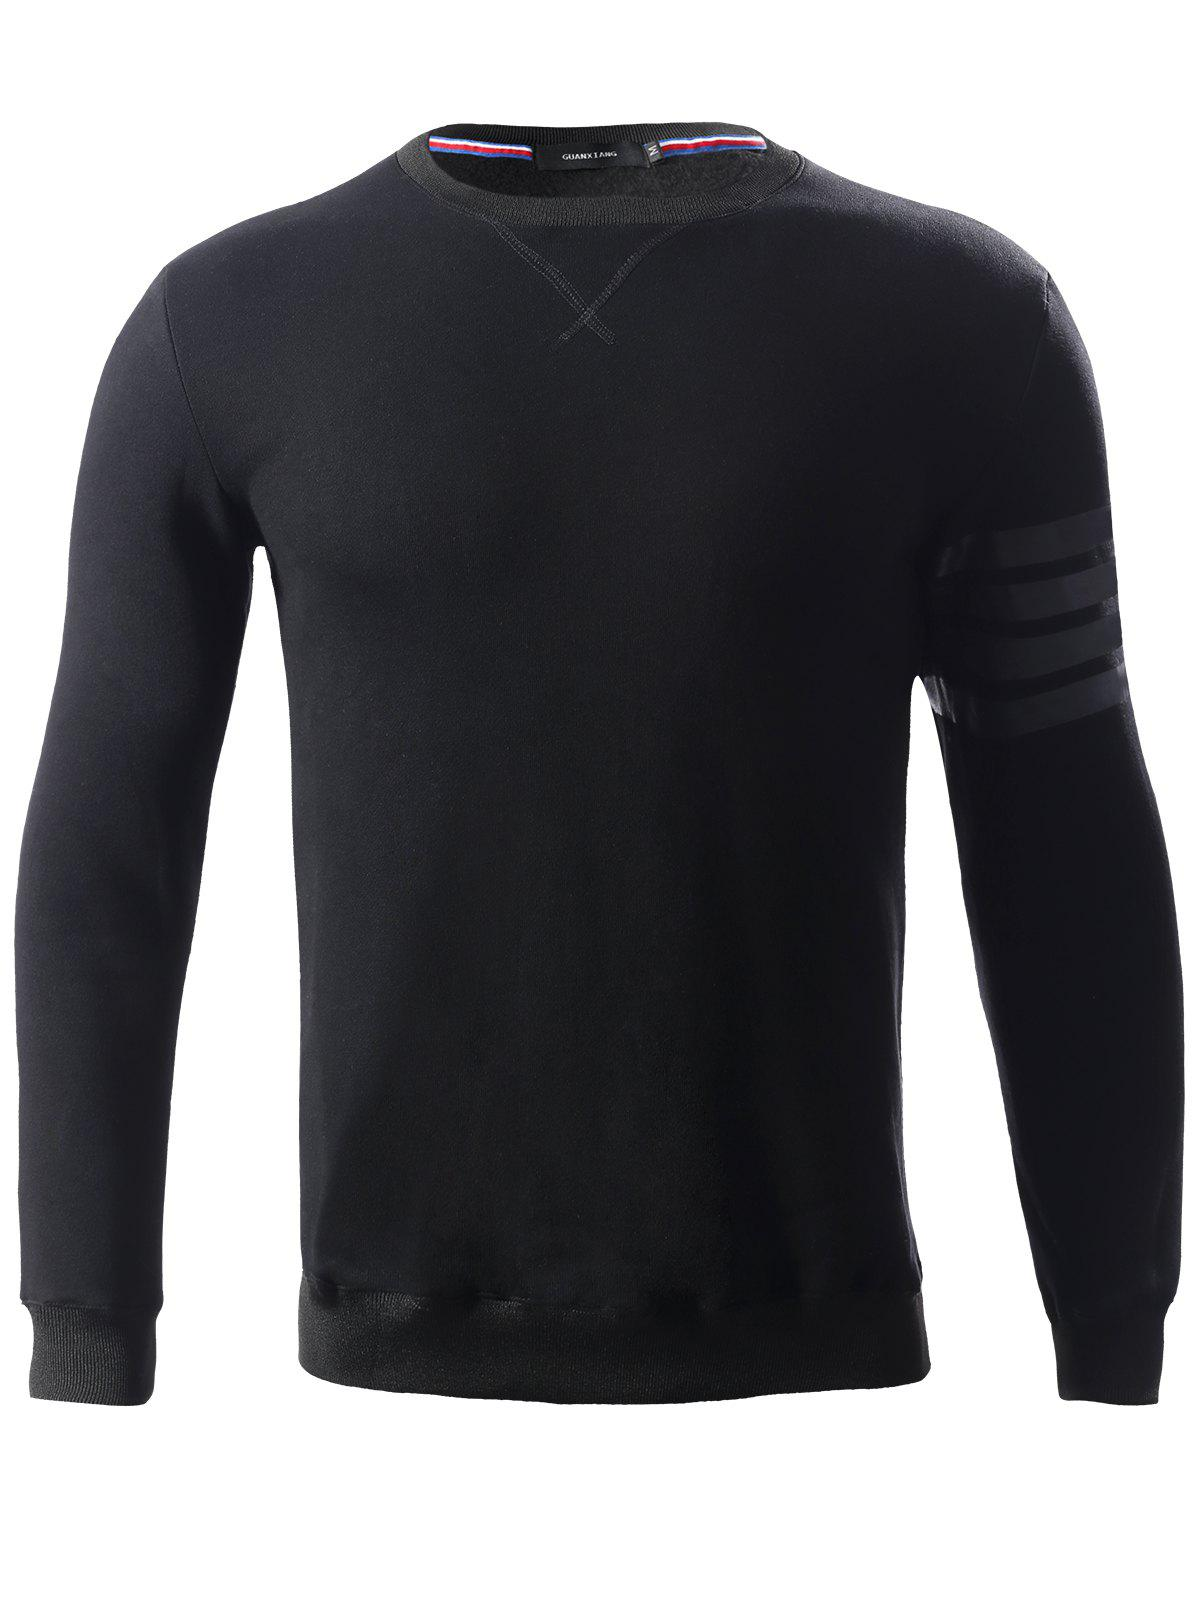 Stripe Embellished Round Neck Long Sleeve Loose-Fitting Thicken Men's Sweatshirt - BLACK L